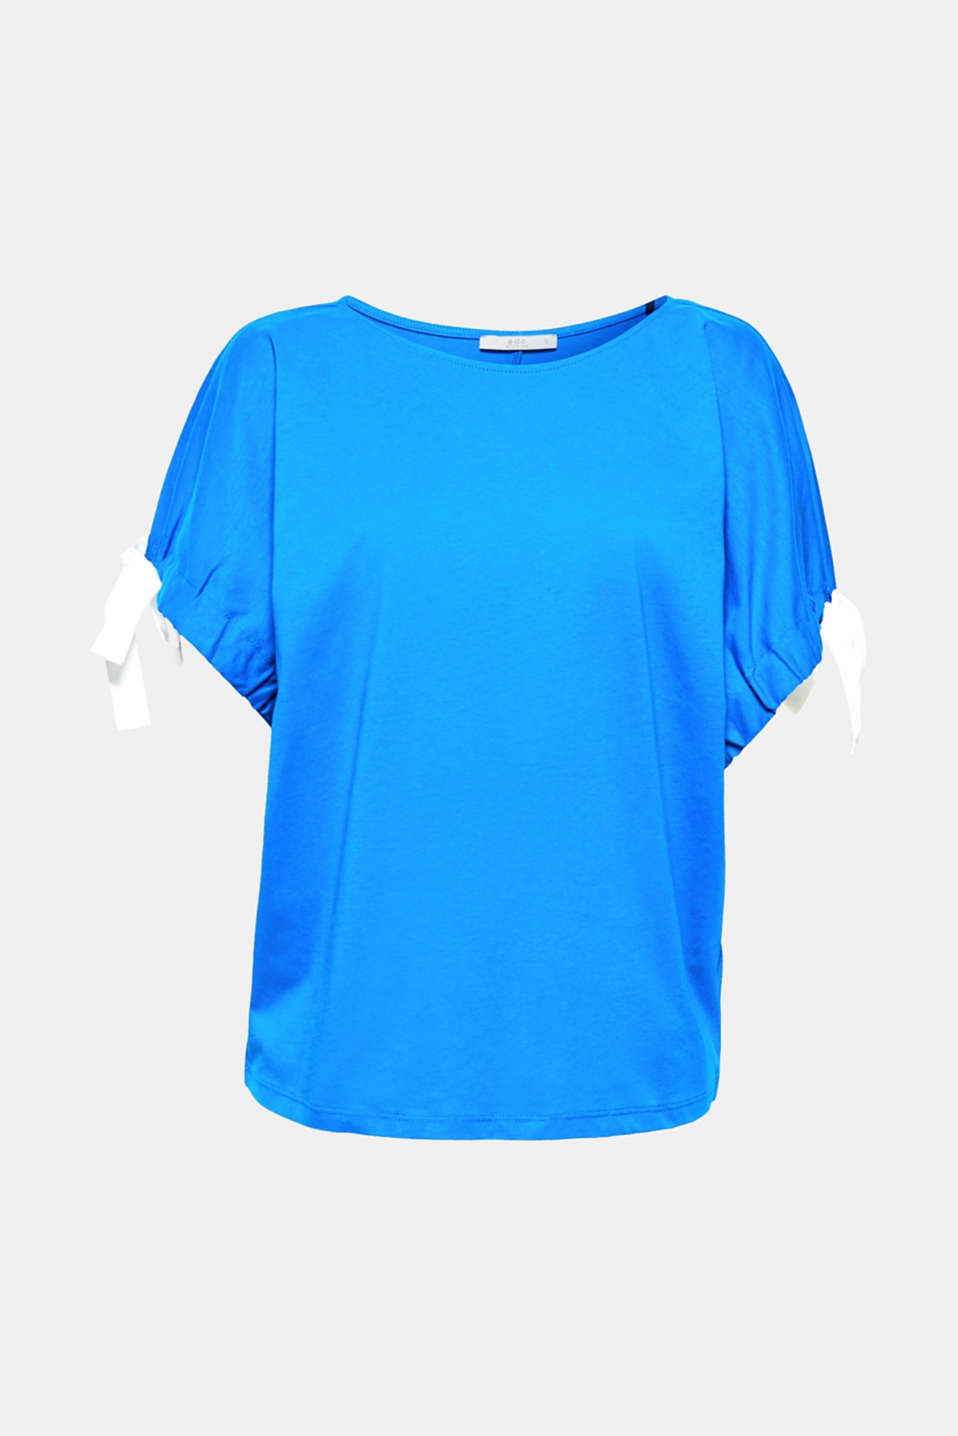 The raglan sleeves with ties in a contrasting colour that can be gathered in various different ways make this T-shirt super trendy.